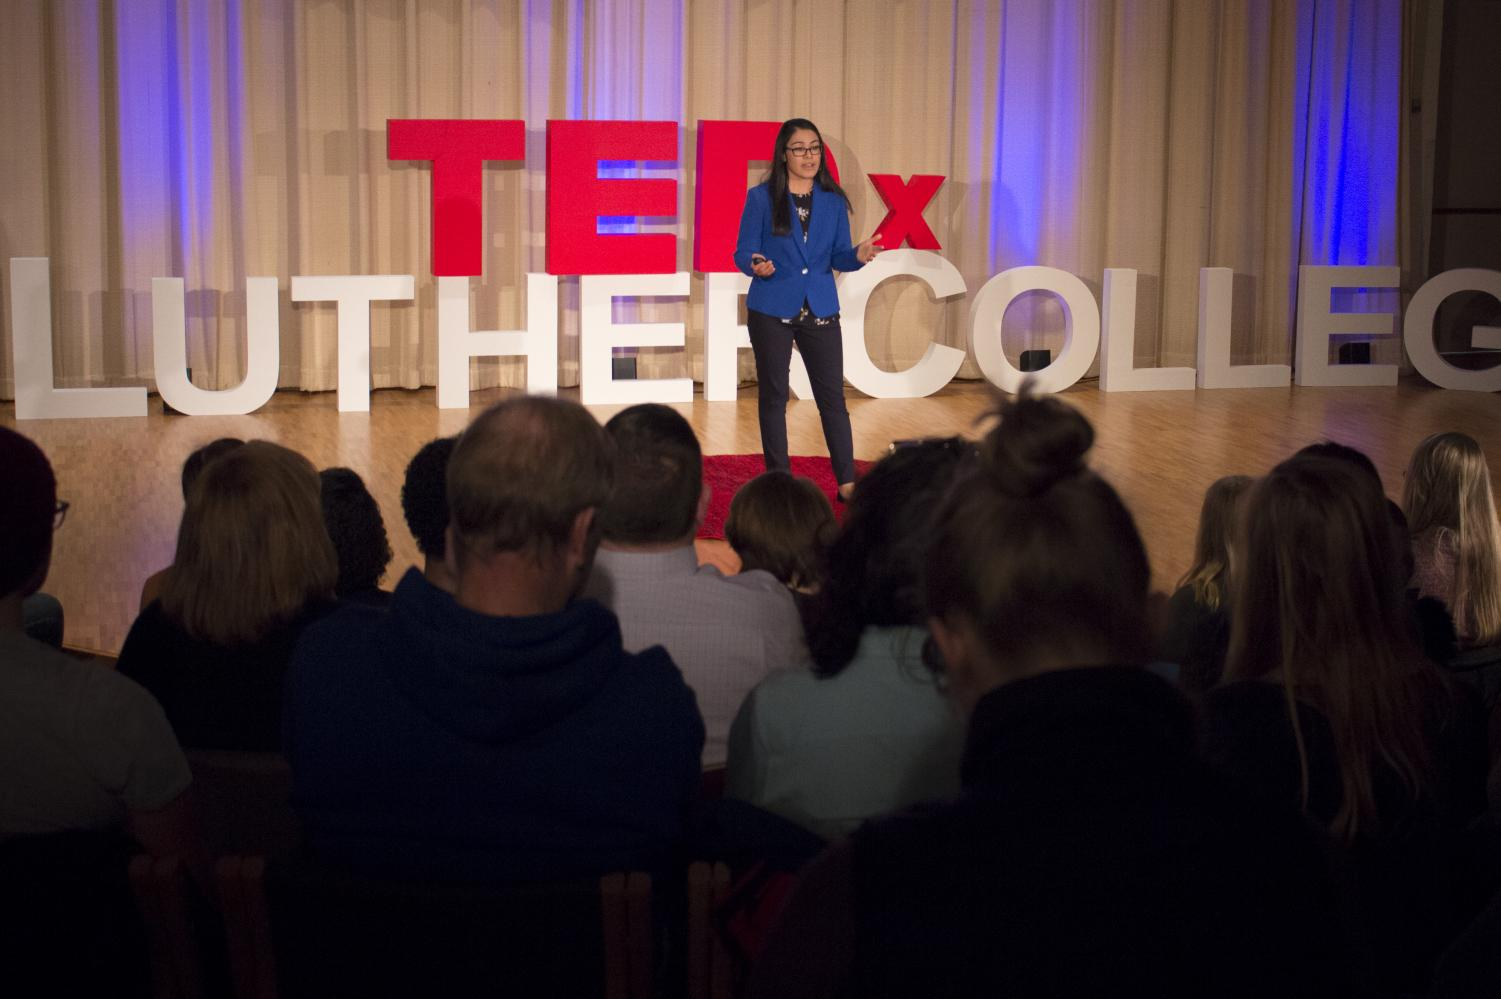 Anila Bano ('20) delivers her TEDx talk on the effects of climate change in Northern Pakistan